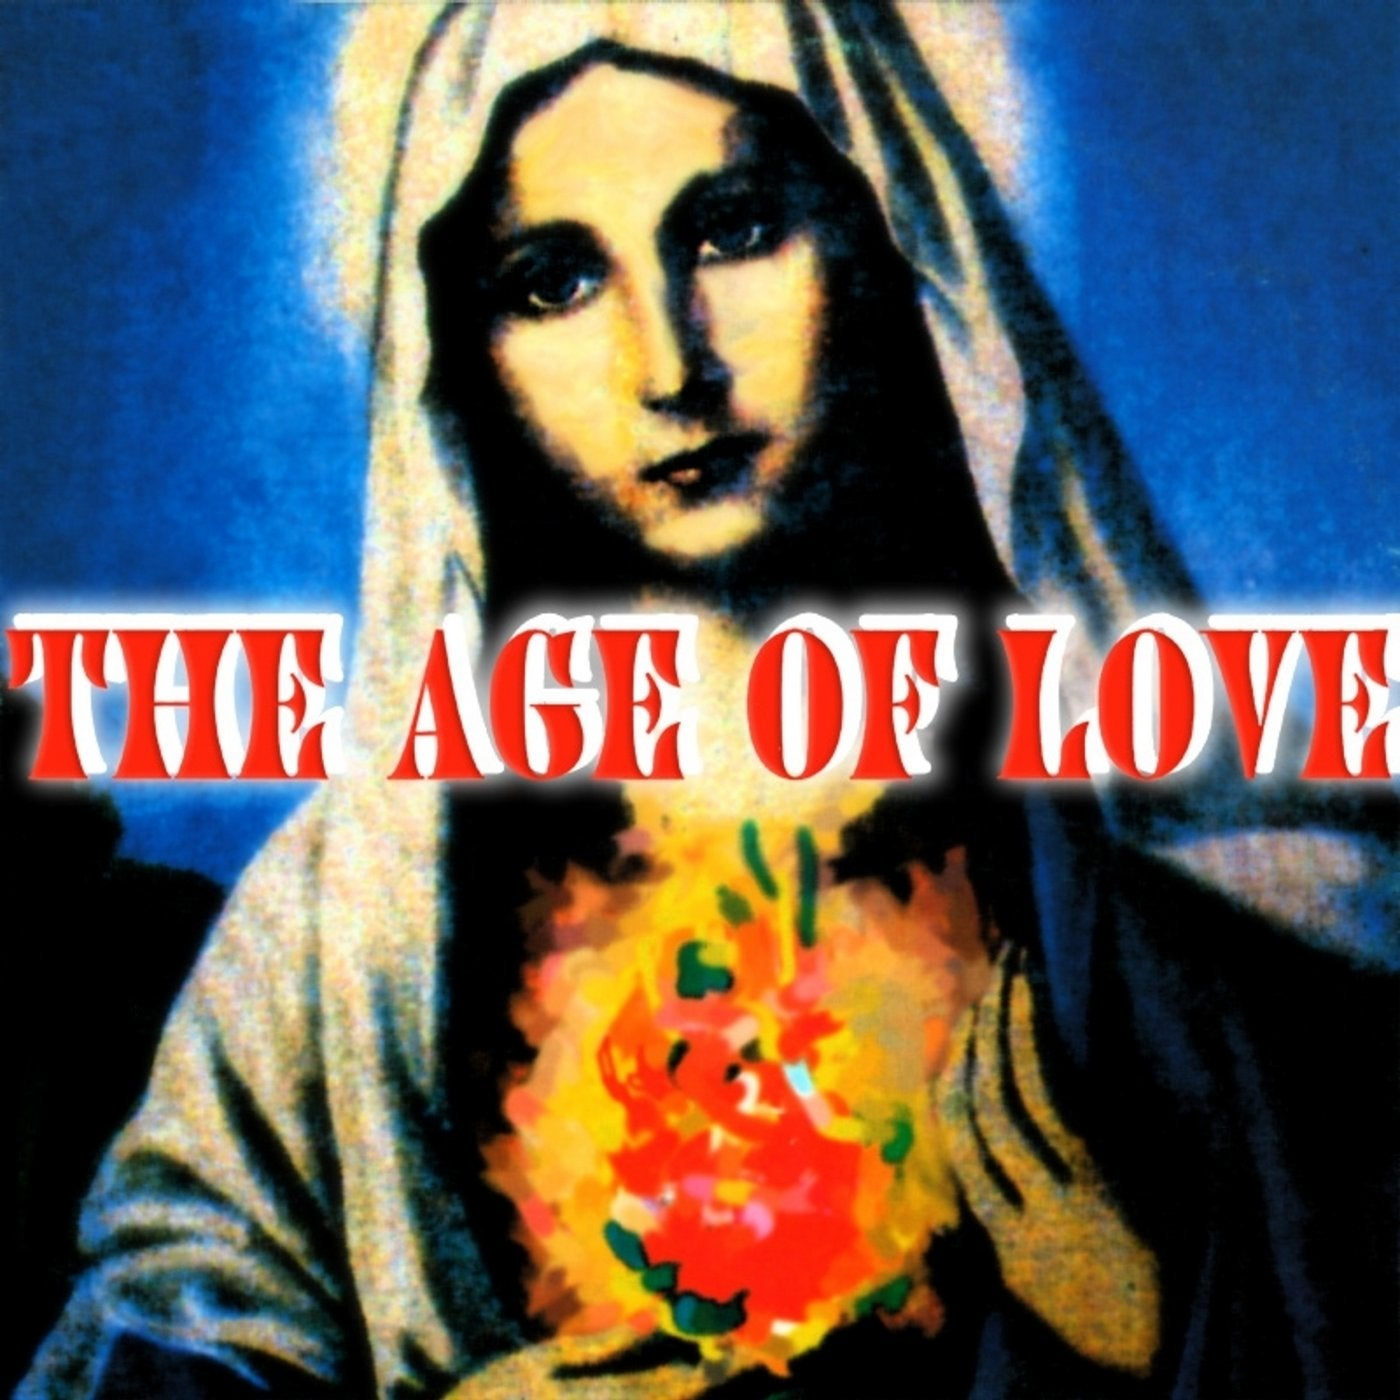 The Age Of Love (Jam & Spoon Watch Out For Stella Mix)